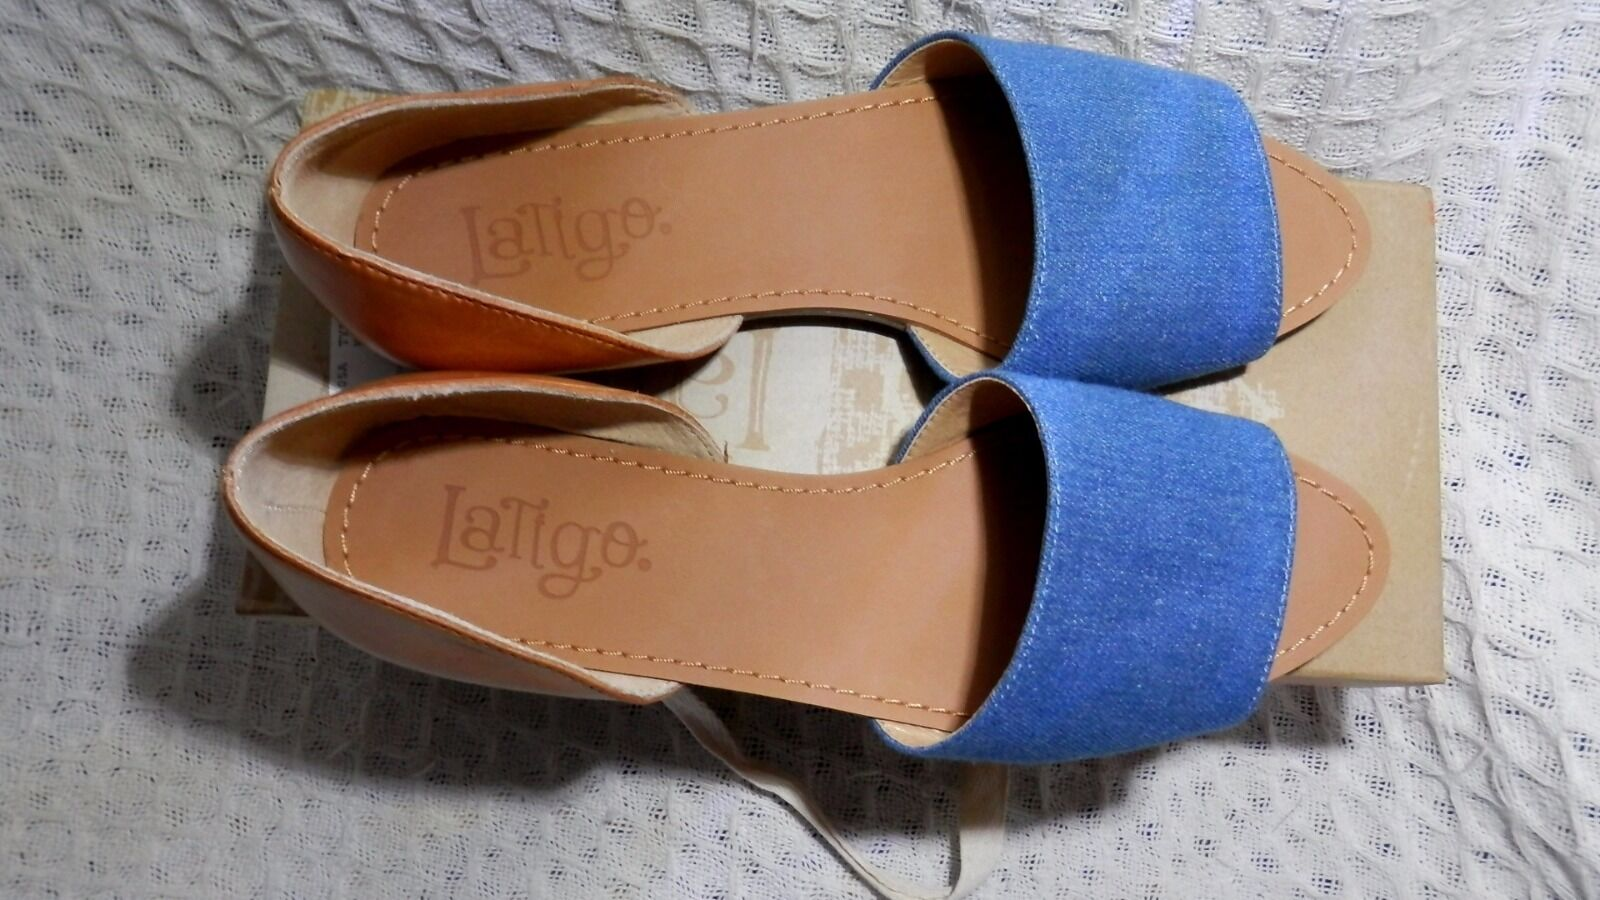 WOMEN LATIGO MILLY Blau NATURAL FLAT . SANDALS US 8M/UK 6 . FLAT 25f4ea